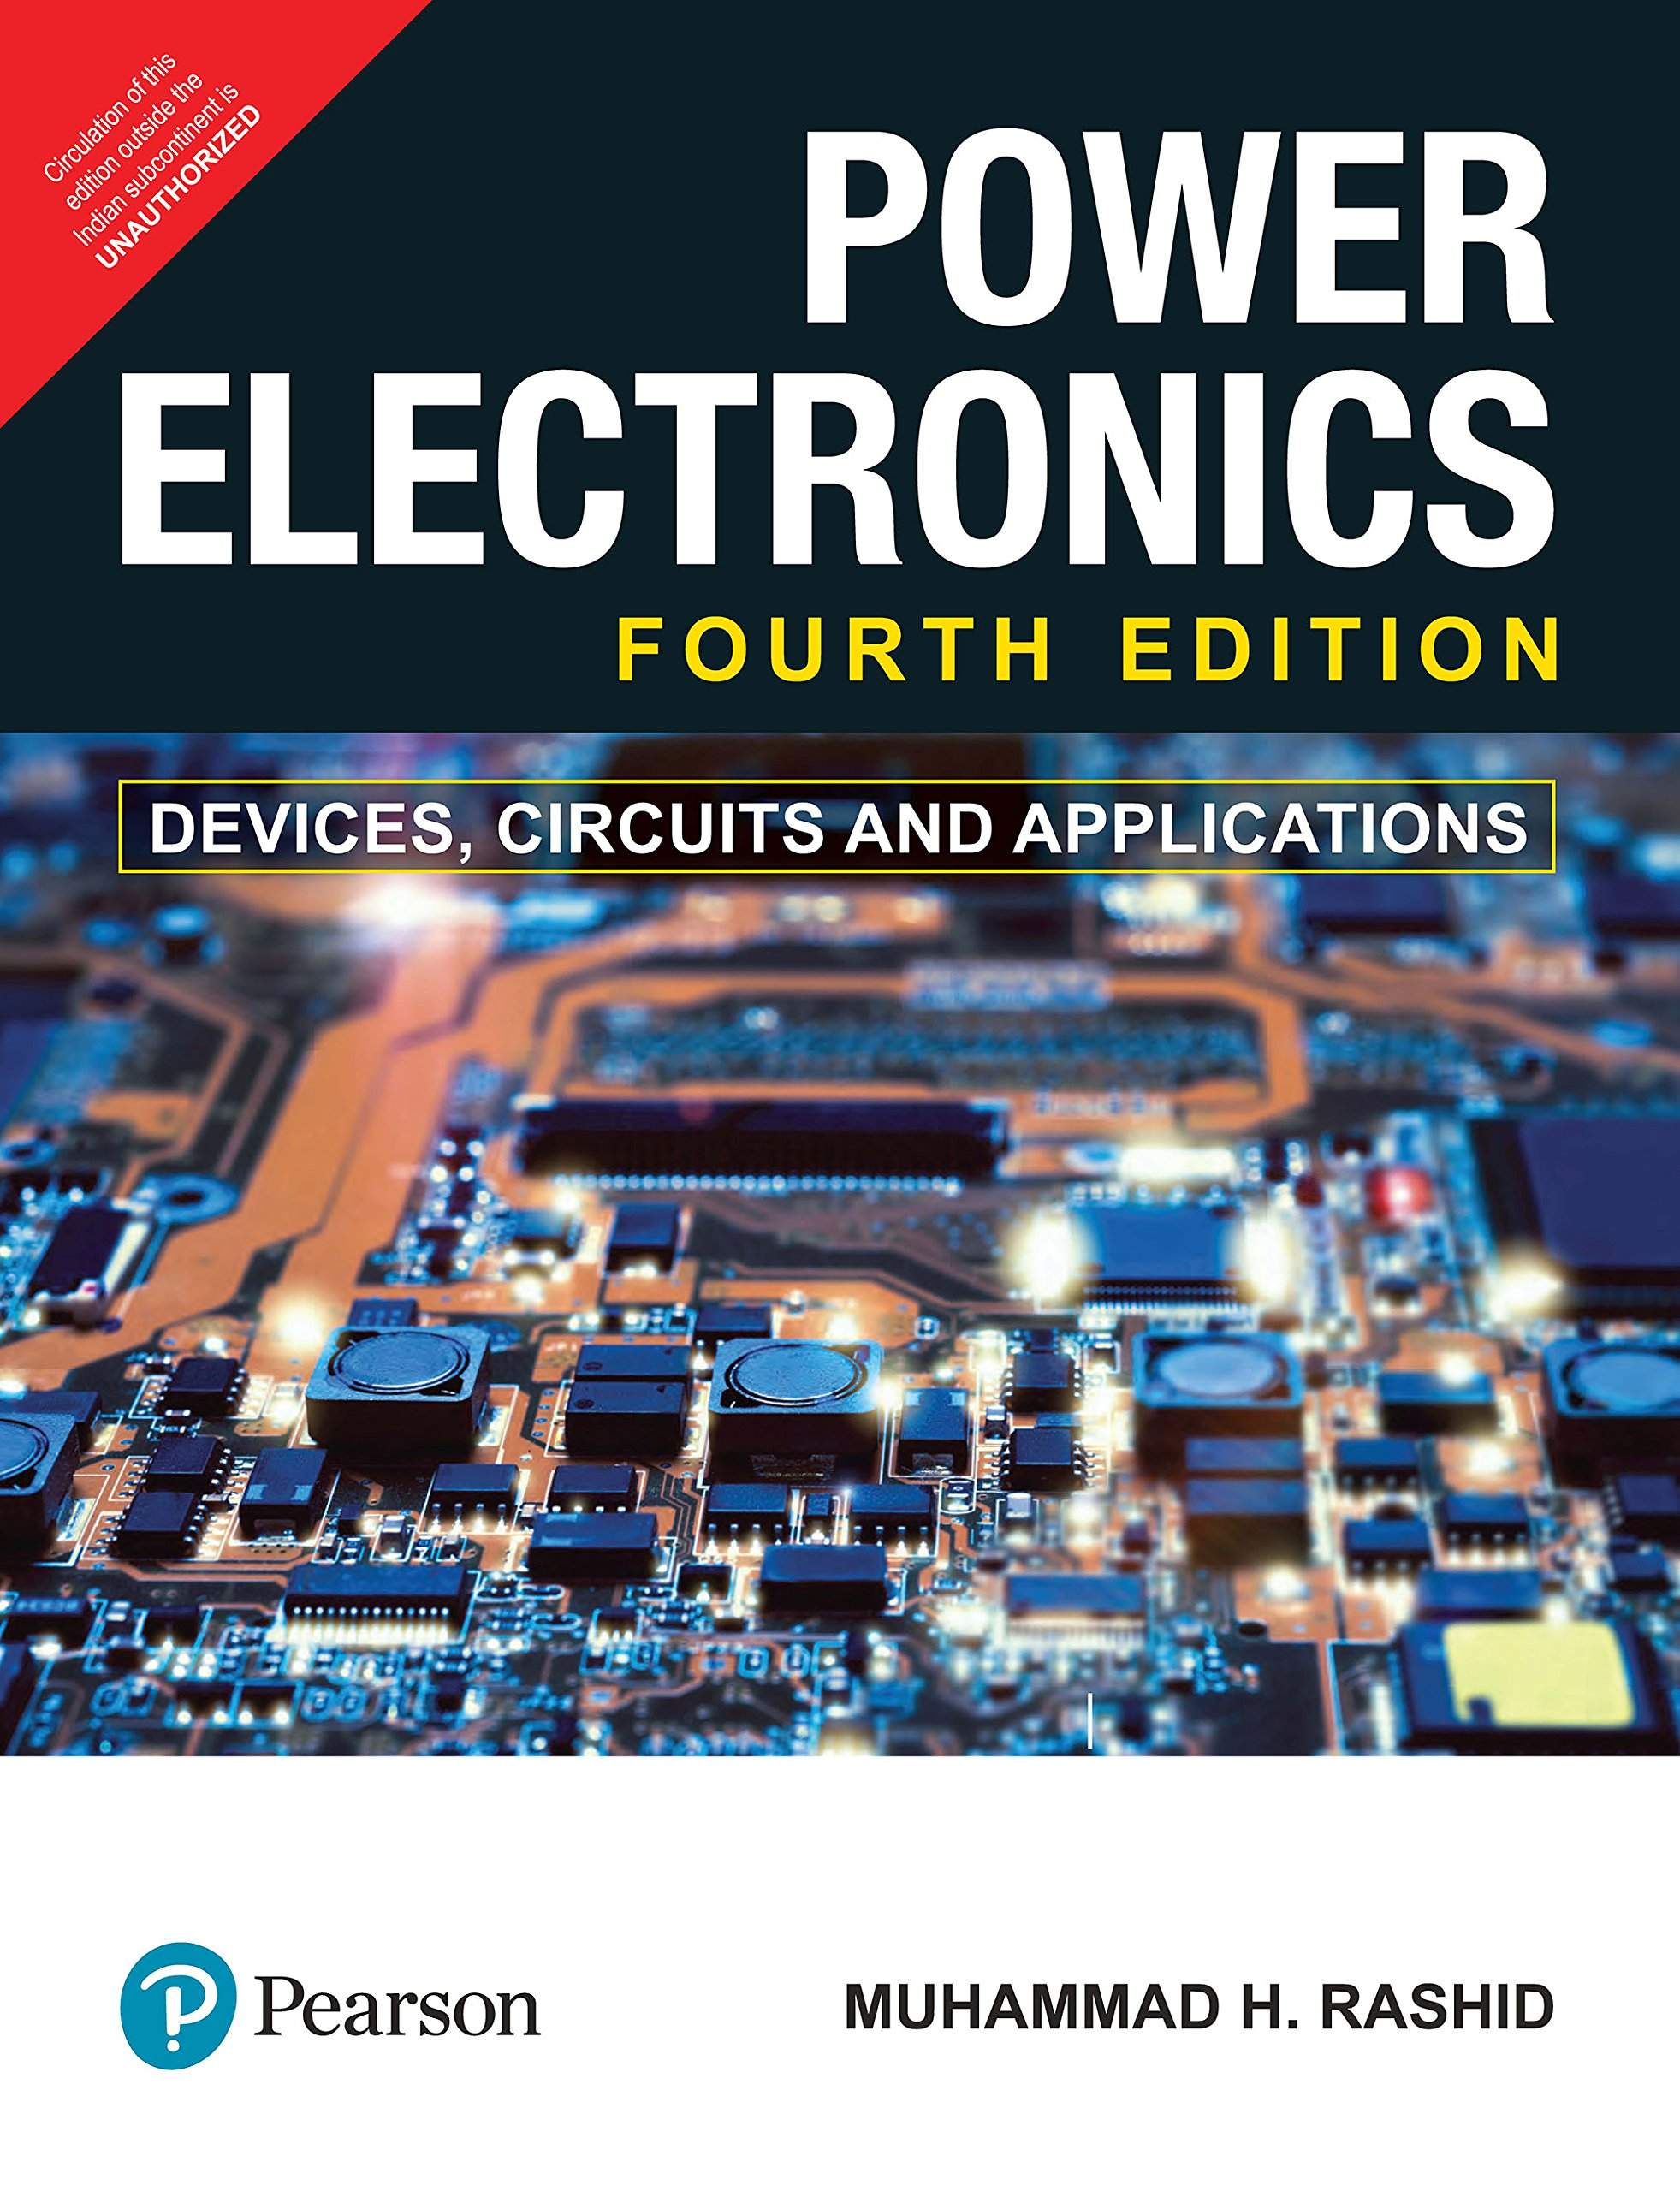 Buy Power Electronics Devices Circuits And Applications Book Electronic Circuit Design Pune Online At Low Prices In India Reviews